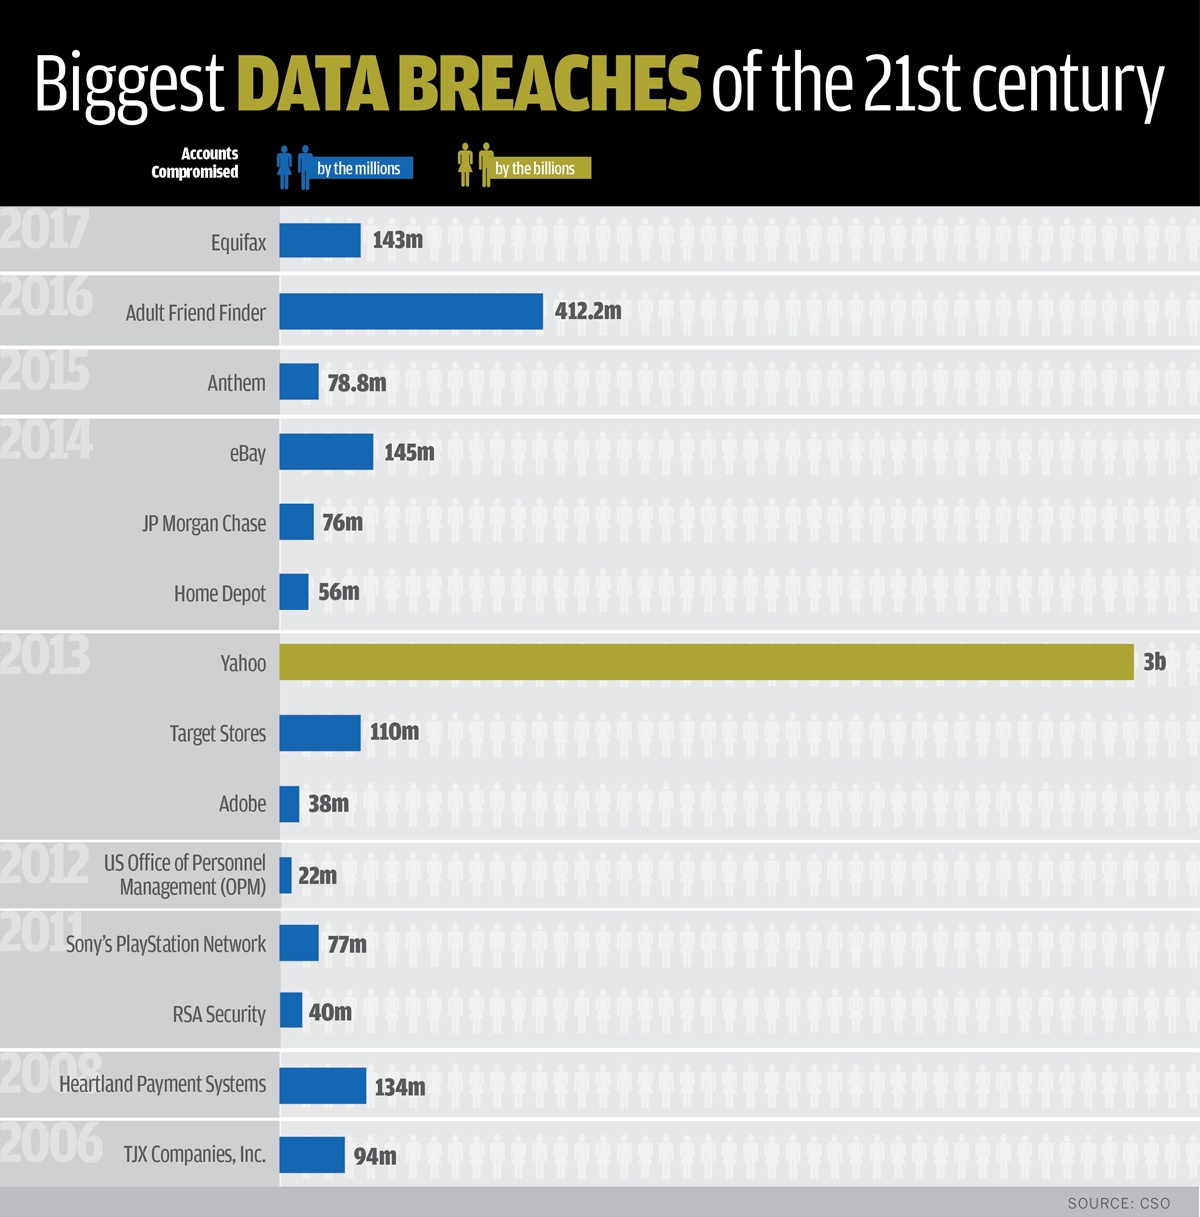 biggest-data-breaches-by-year-and-accounts-compromised-1-100738435-orig